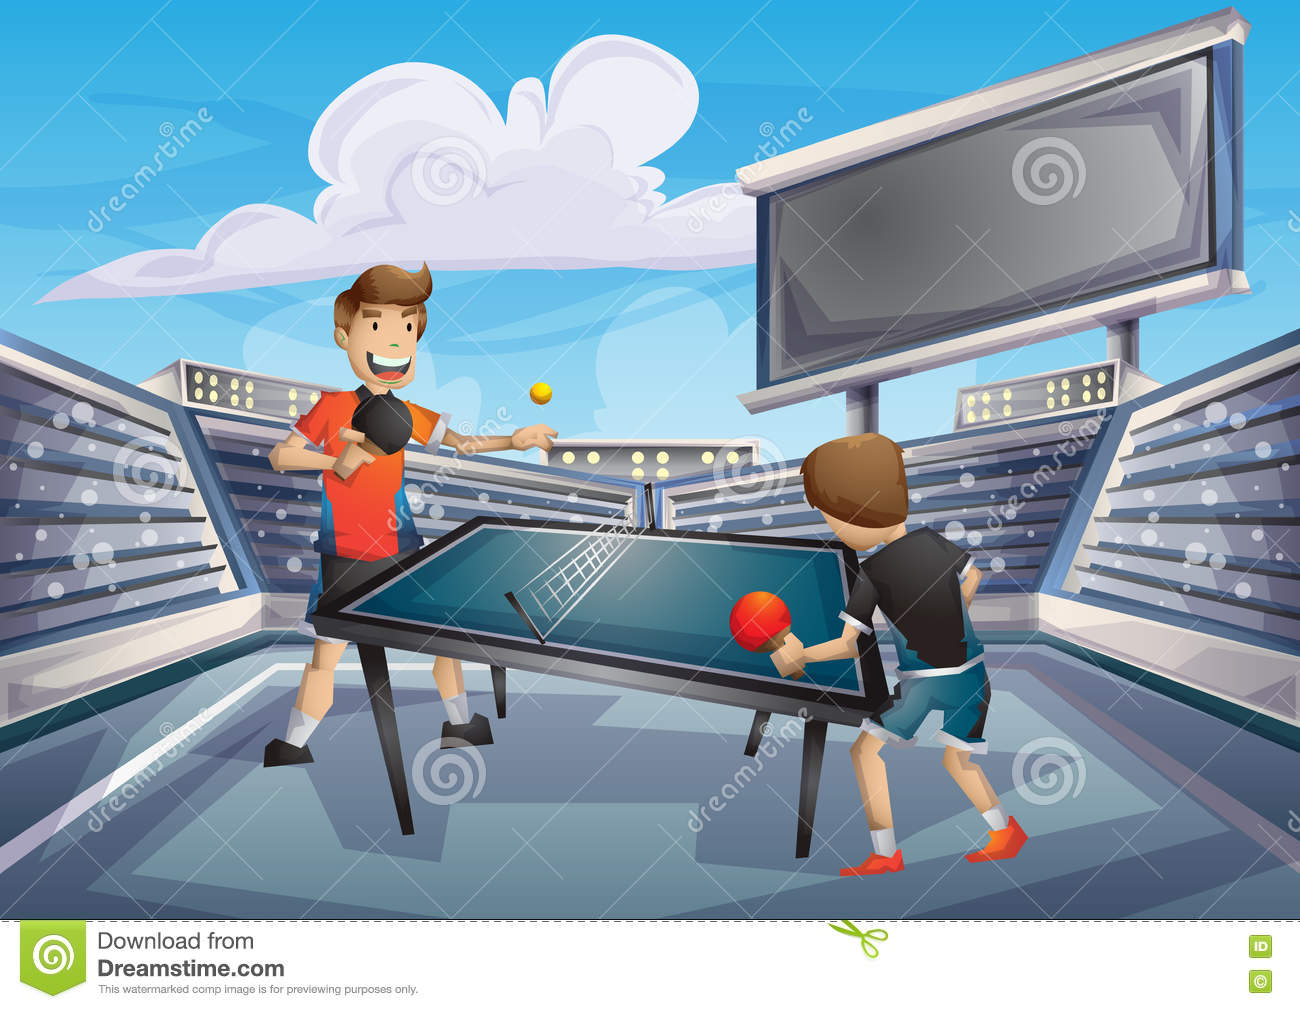 Cartoon Table Tennis Player Cartoon Vector